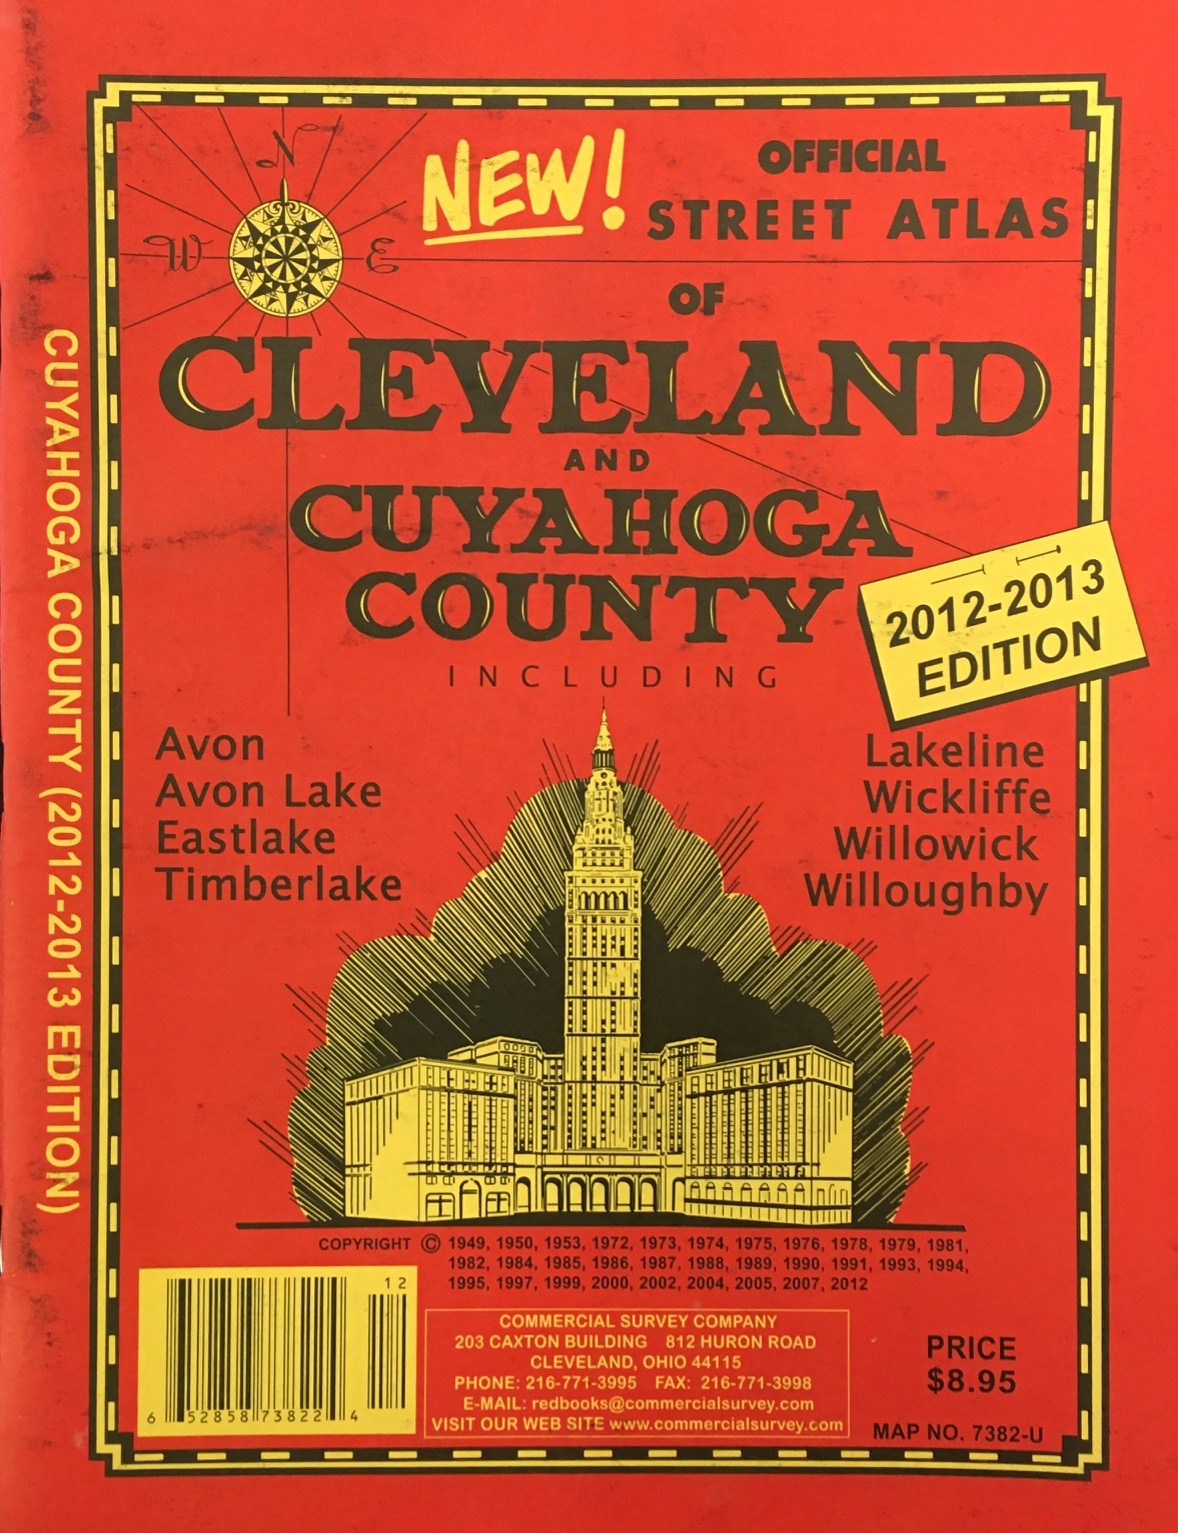 Image for Official Street Atlas of Cleveland and Cuyahoga County Including: Avon, Avon Lake, Eastlake, Timberlake, Lakeline, Wickliffe, Willowick, Willoughby (2012-2013 Edition)